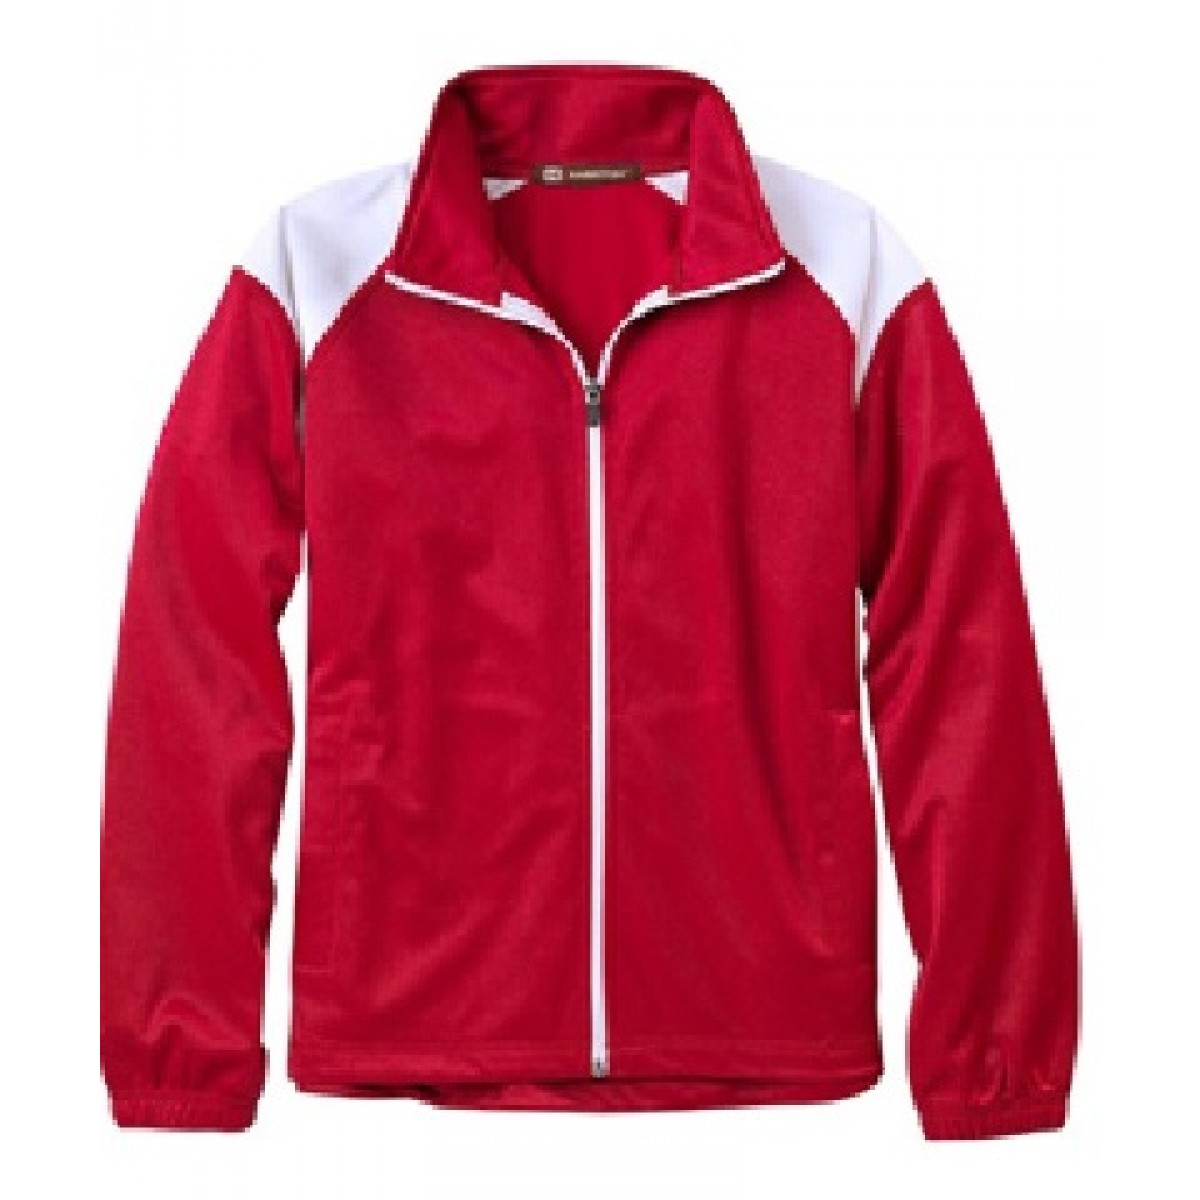 Embroidered Red Tricot Track Jacket